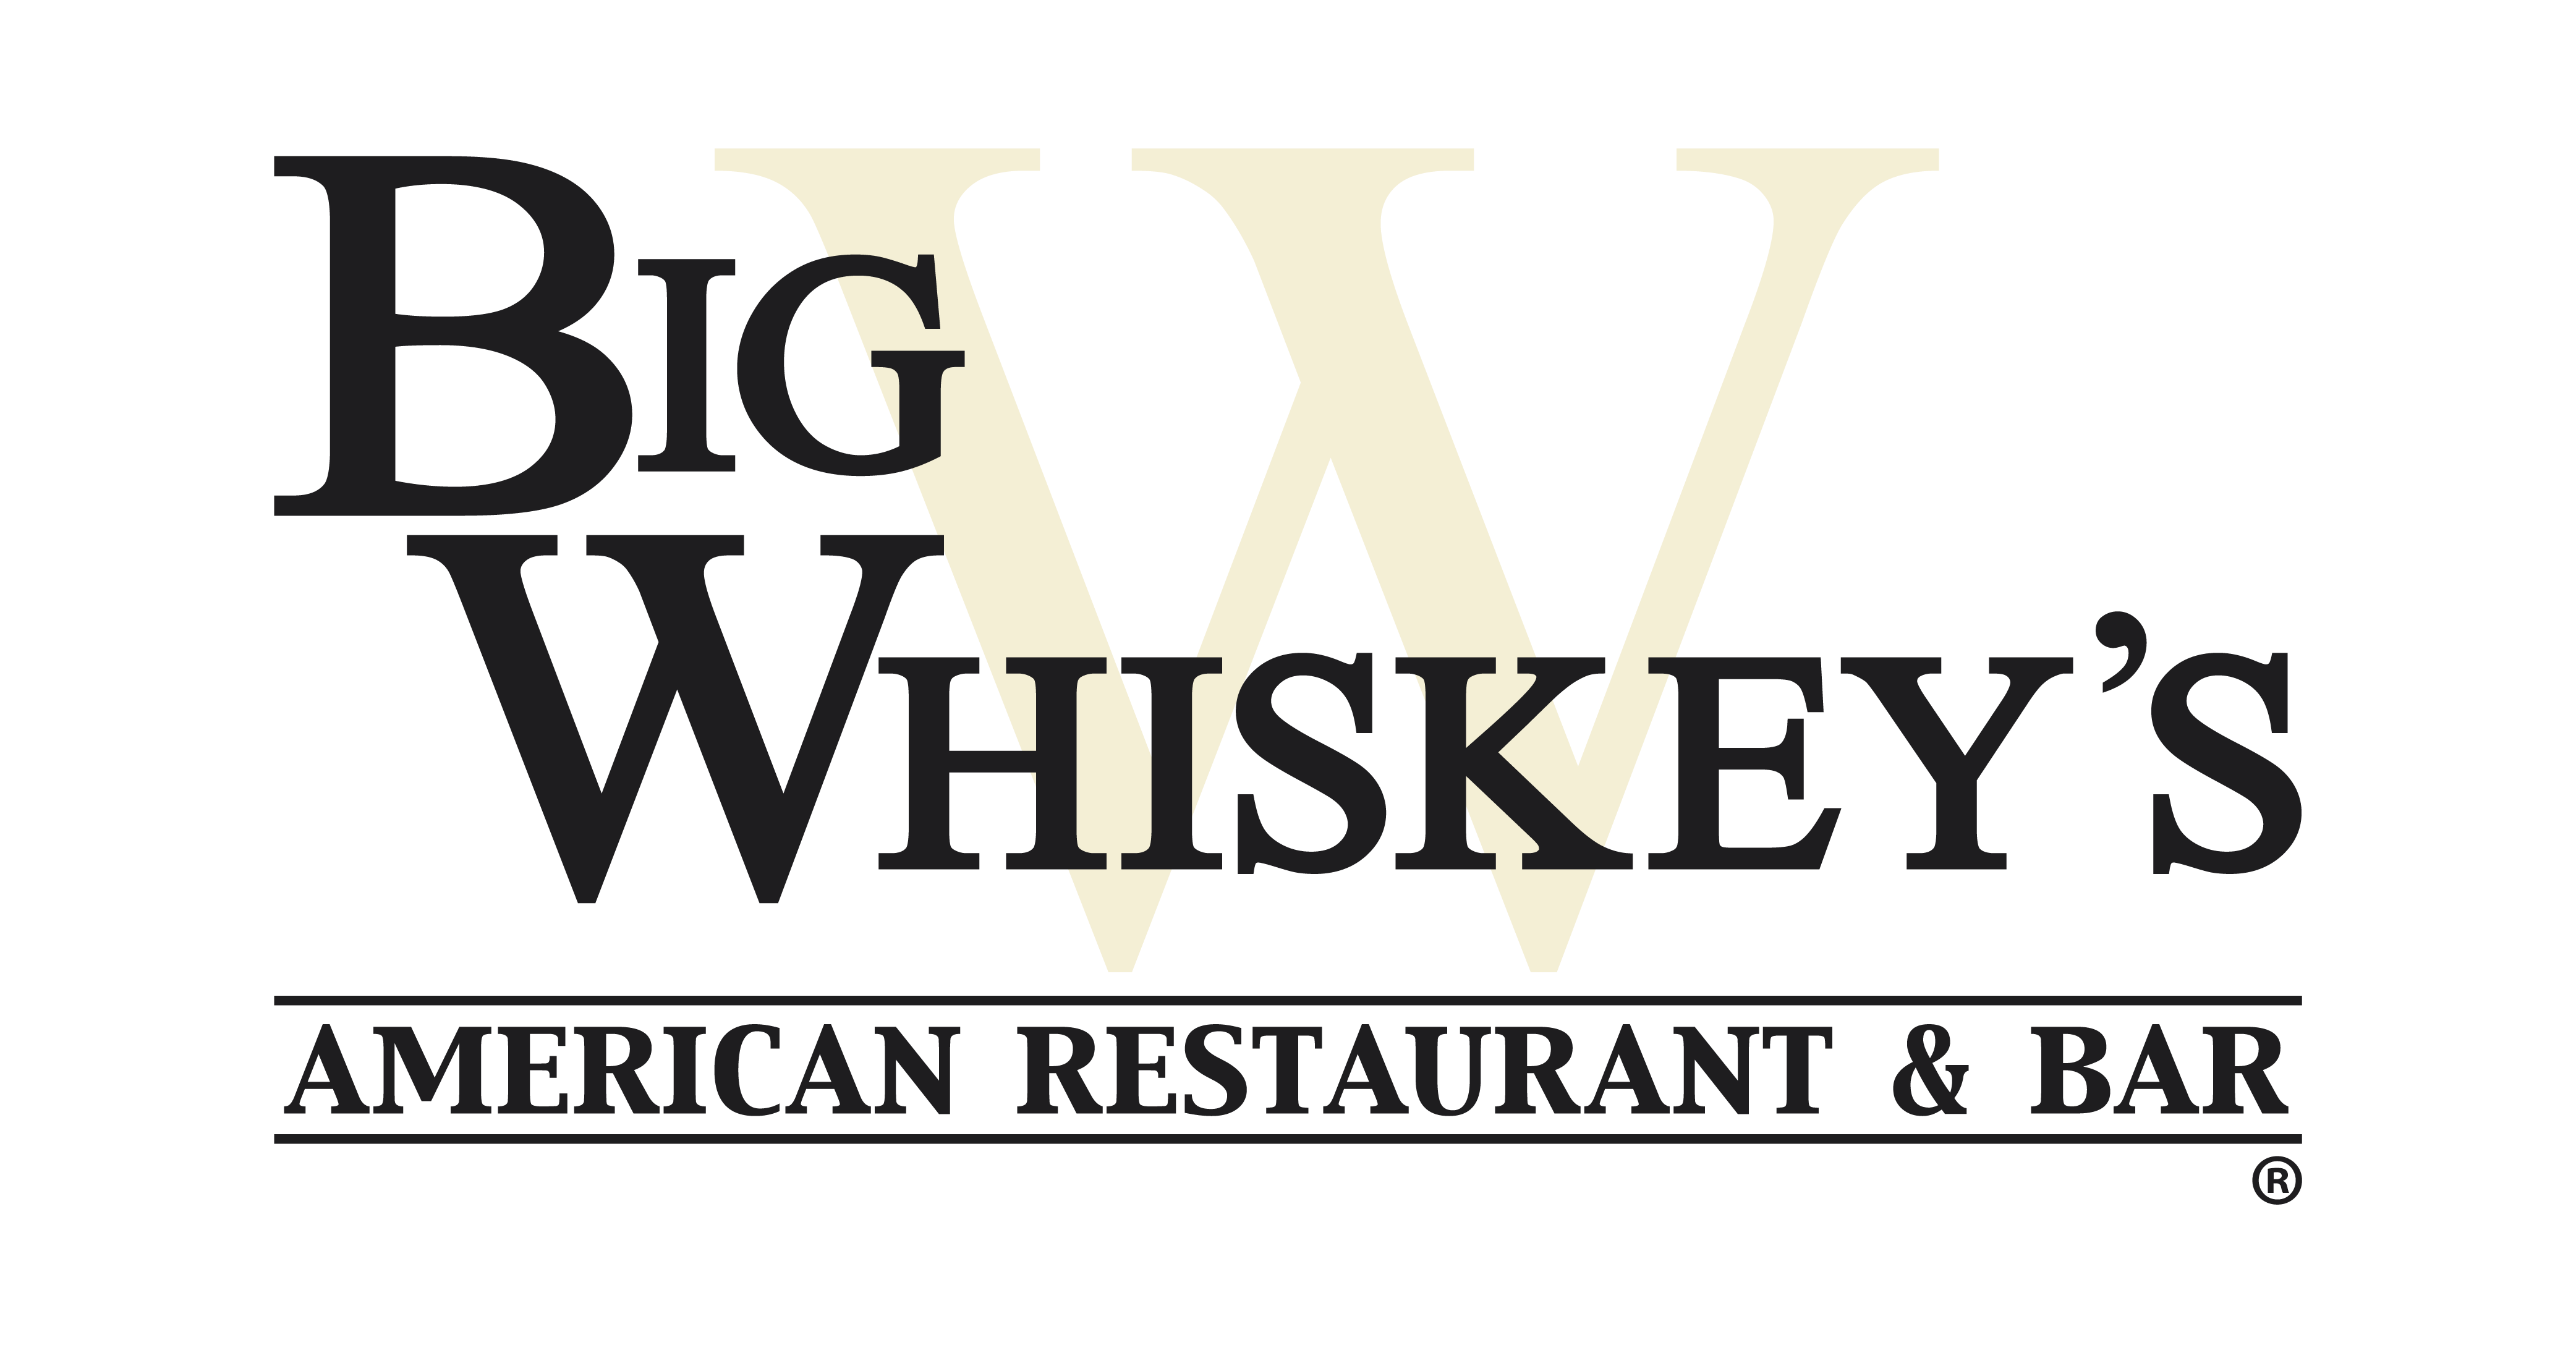 Big Whiskeys